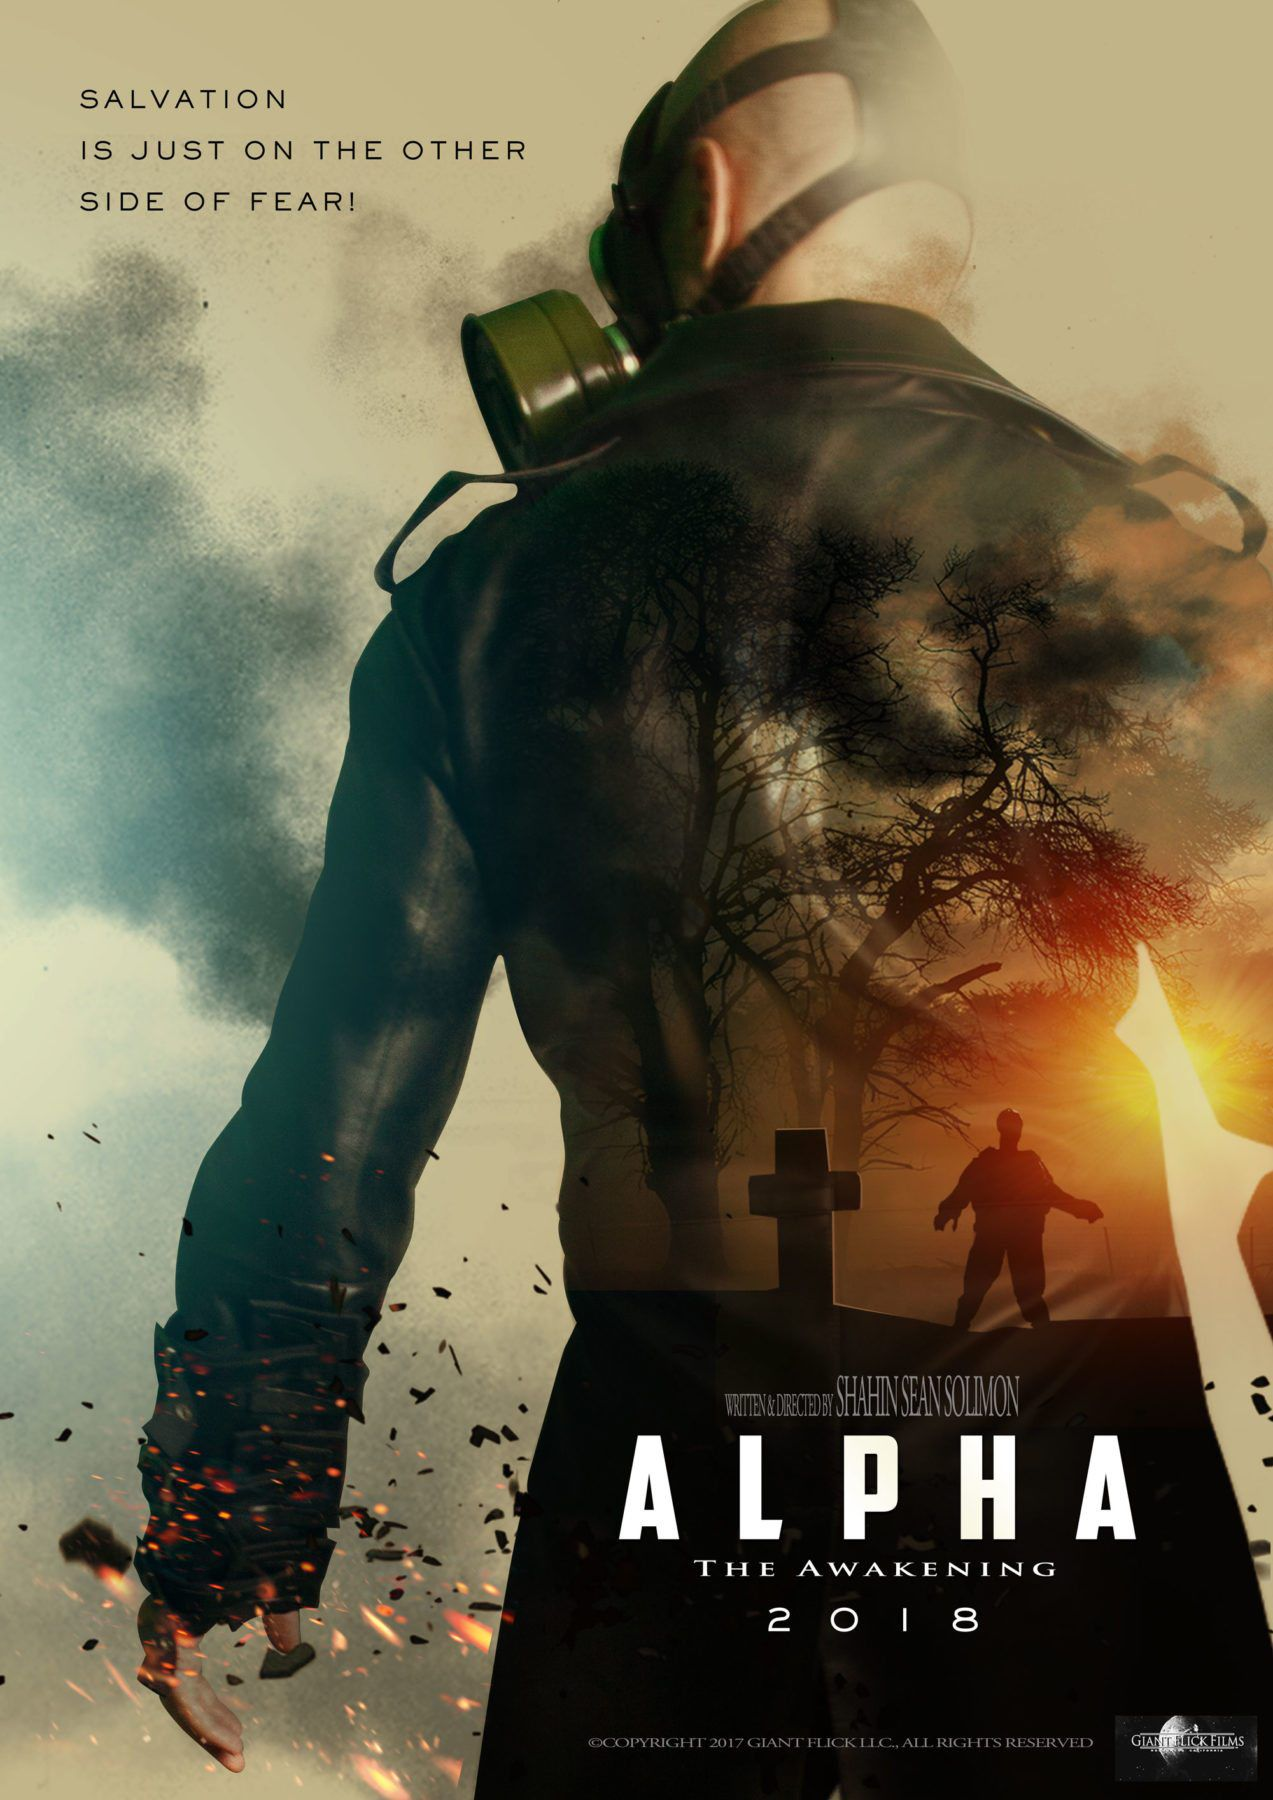 Alpha: The Awakening - film poster